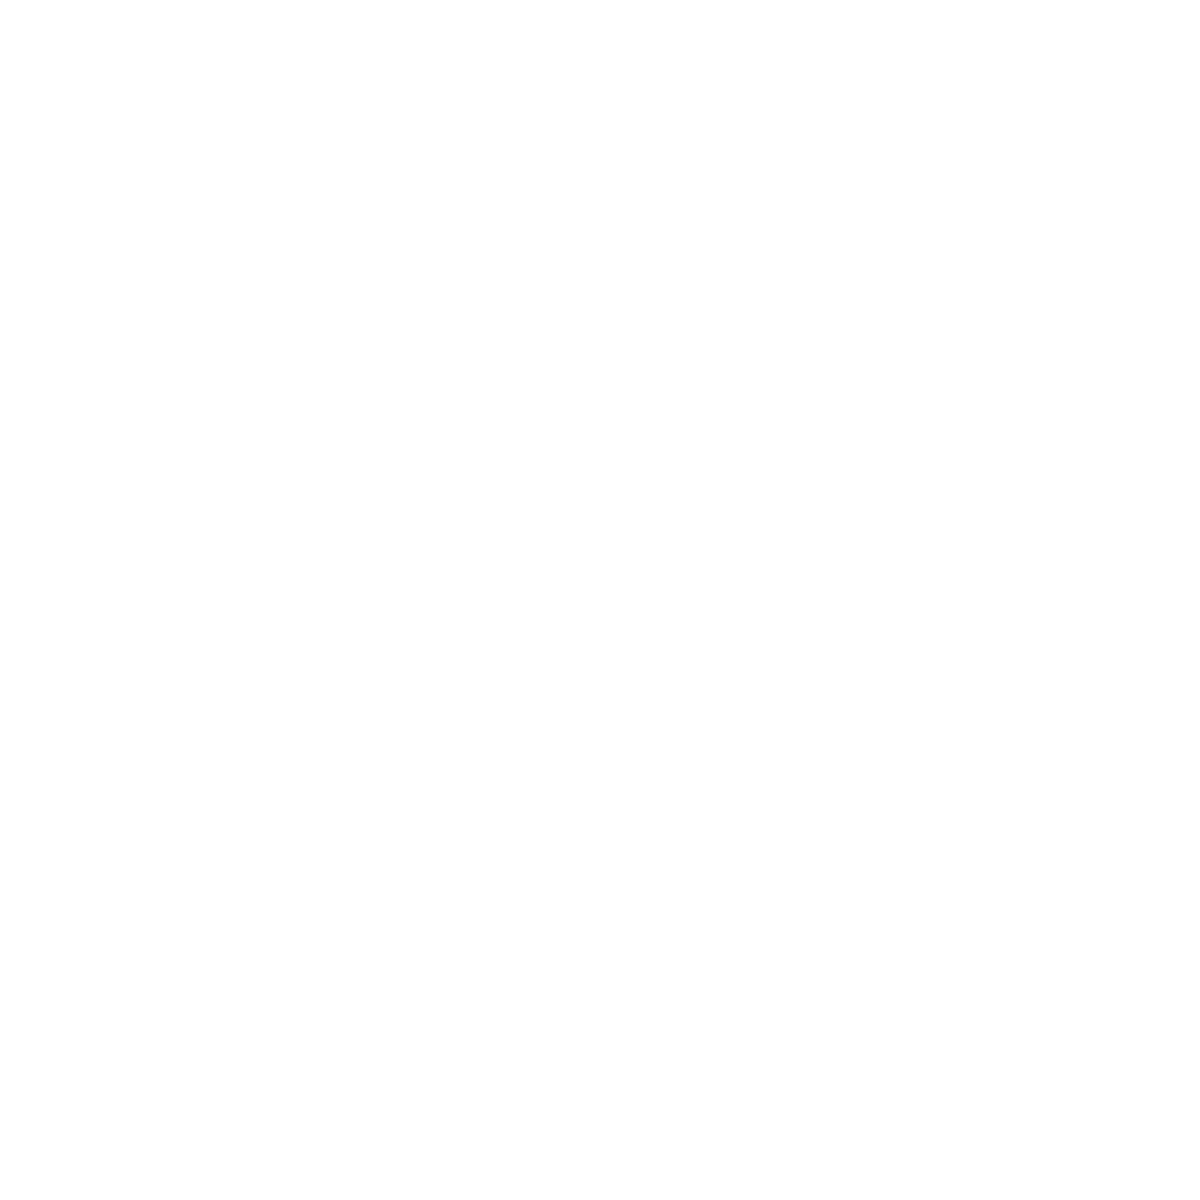 INDIE BEACH KOH CHANG